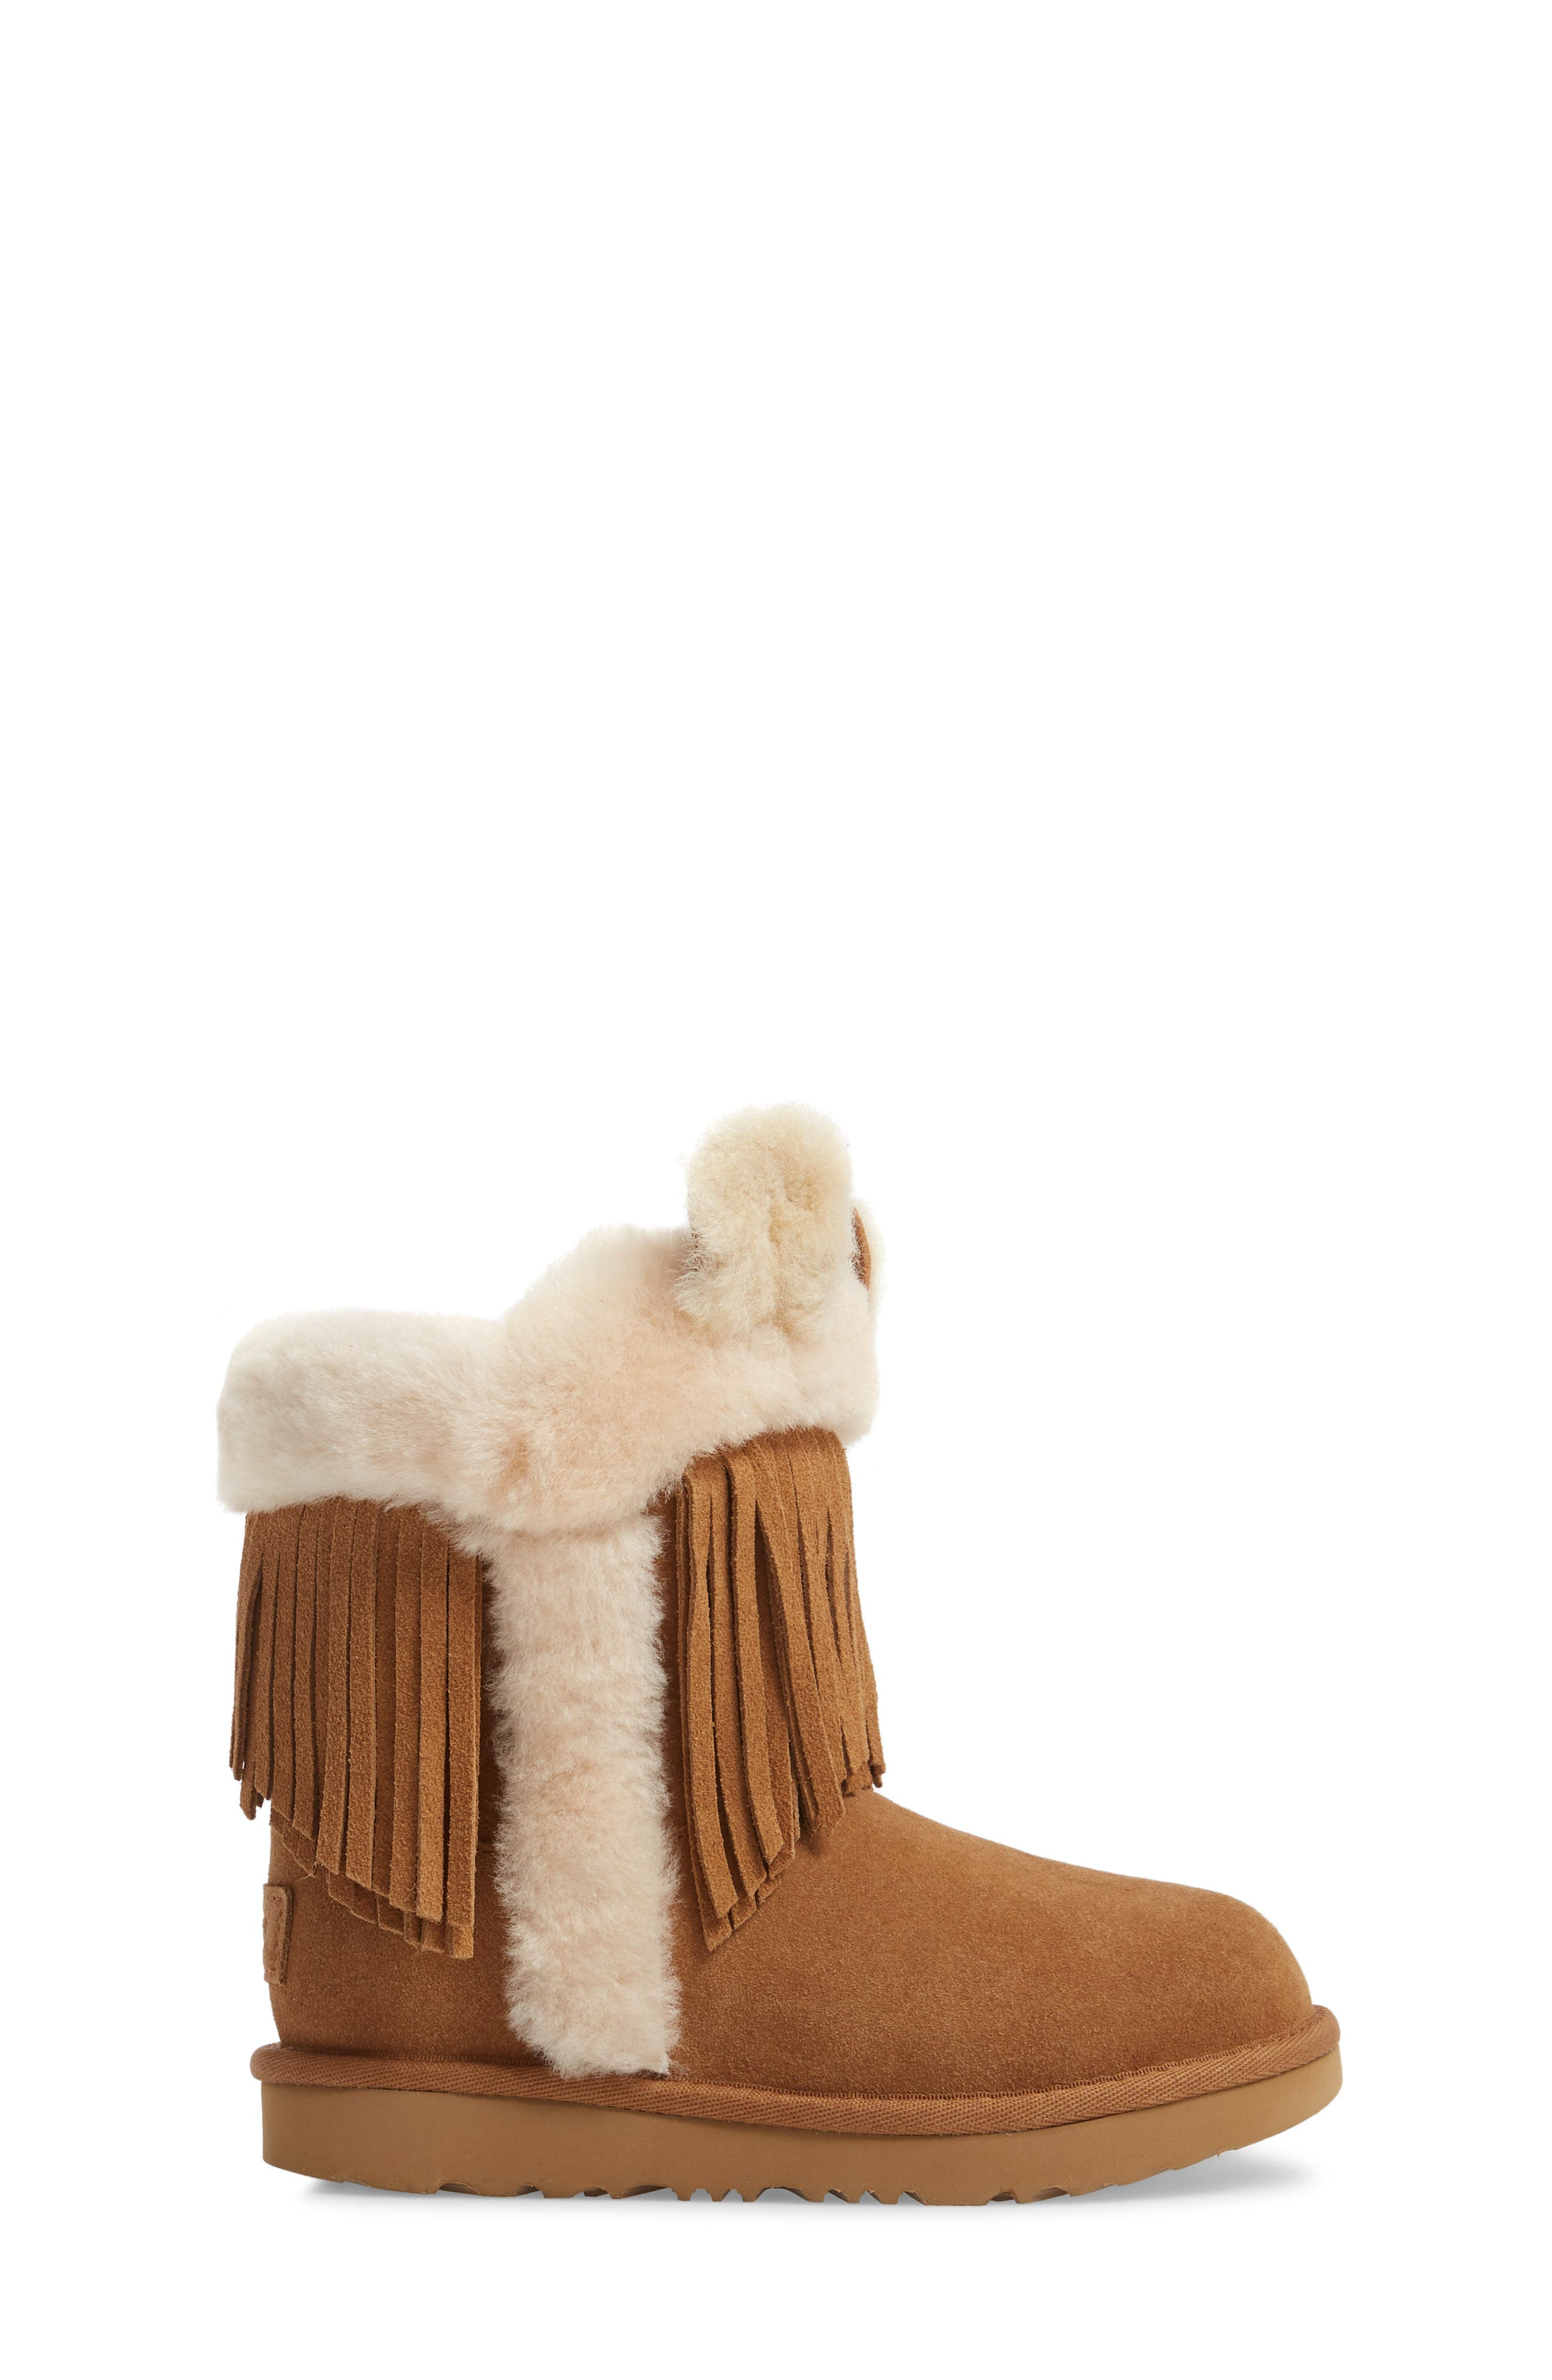 Darlala Classic II Genuine Shearling Boot,                             Alternate thumbnail 3, color,                             CHESTNUT